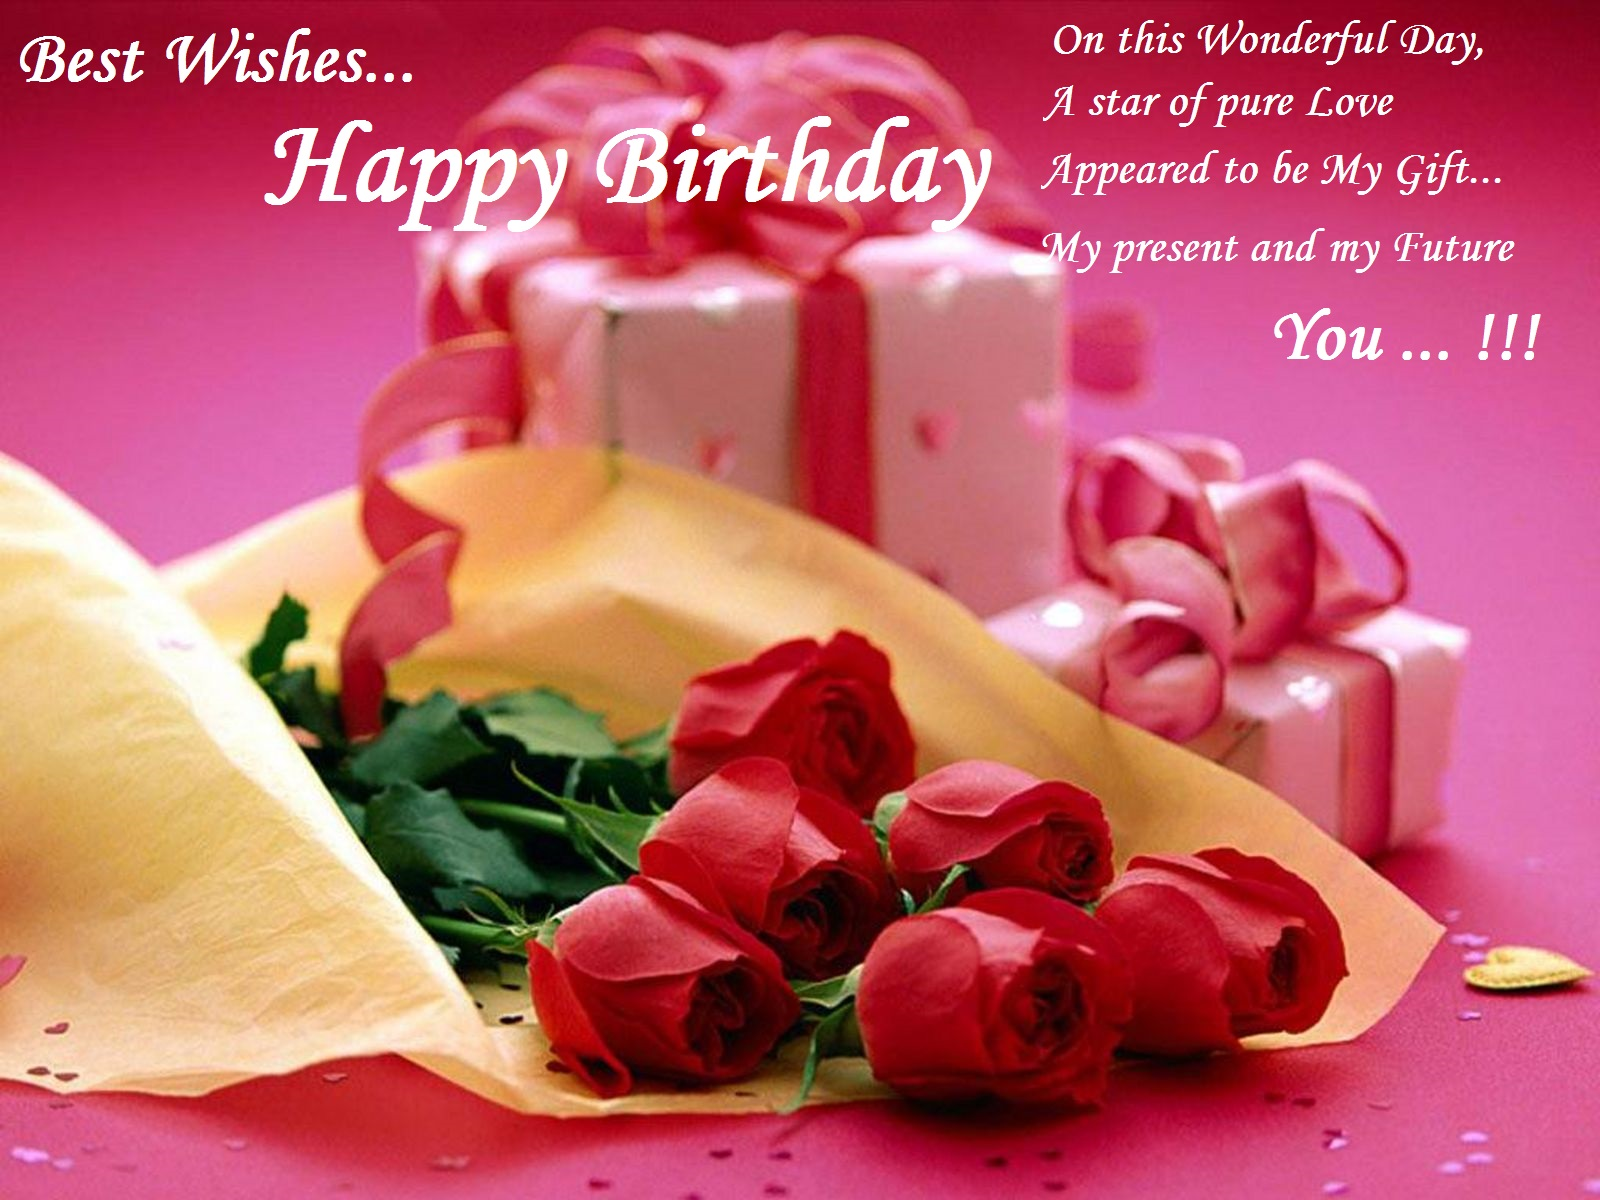 Happy Birthday On This Wonderful Day A Star Of Pure Love Appeared To Be My Gift Present And Future You